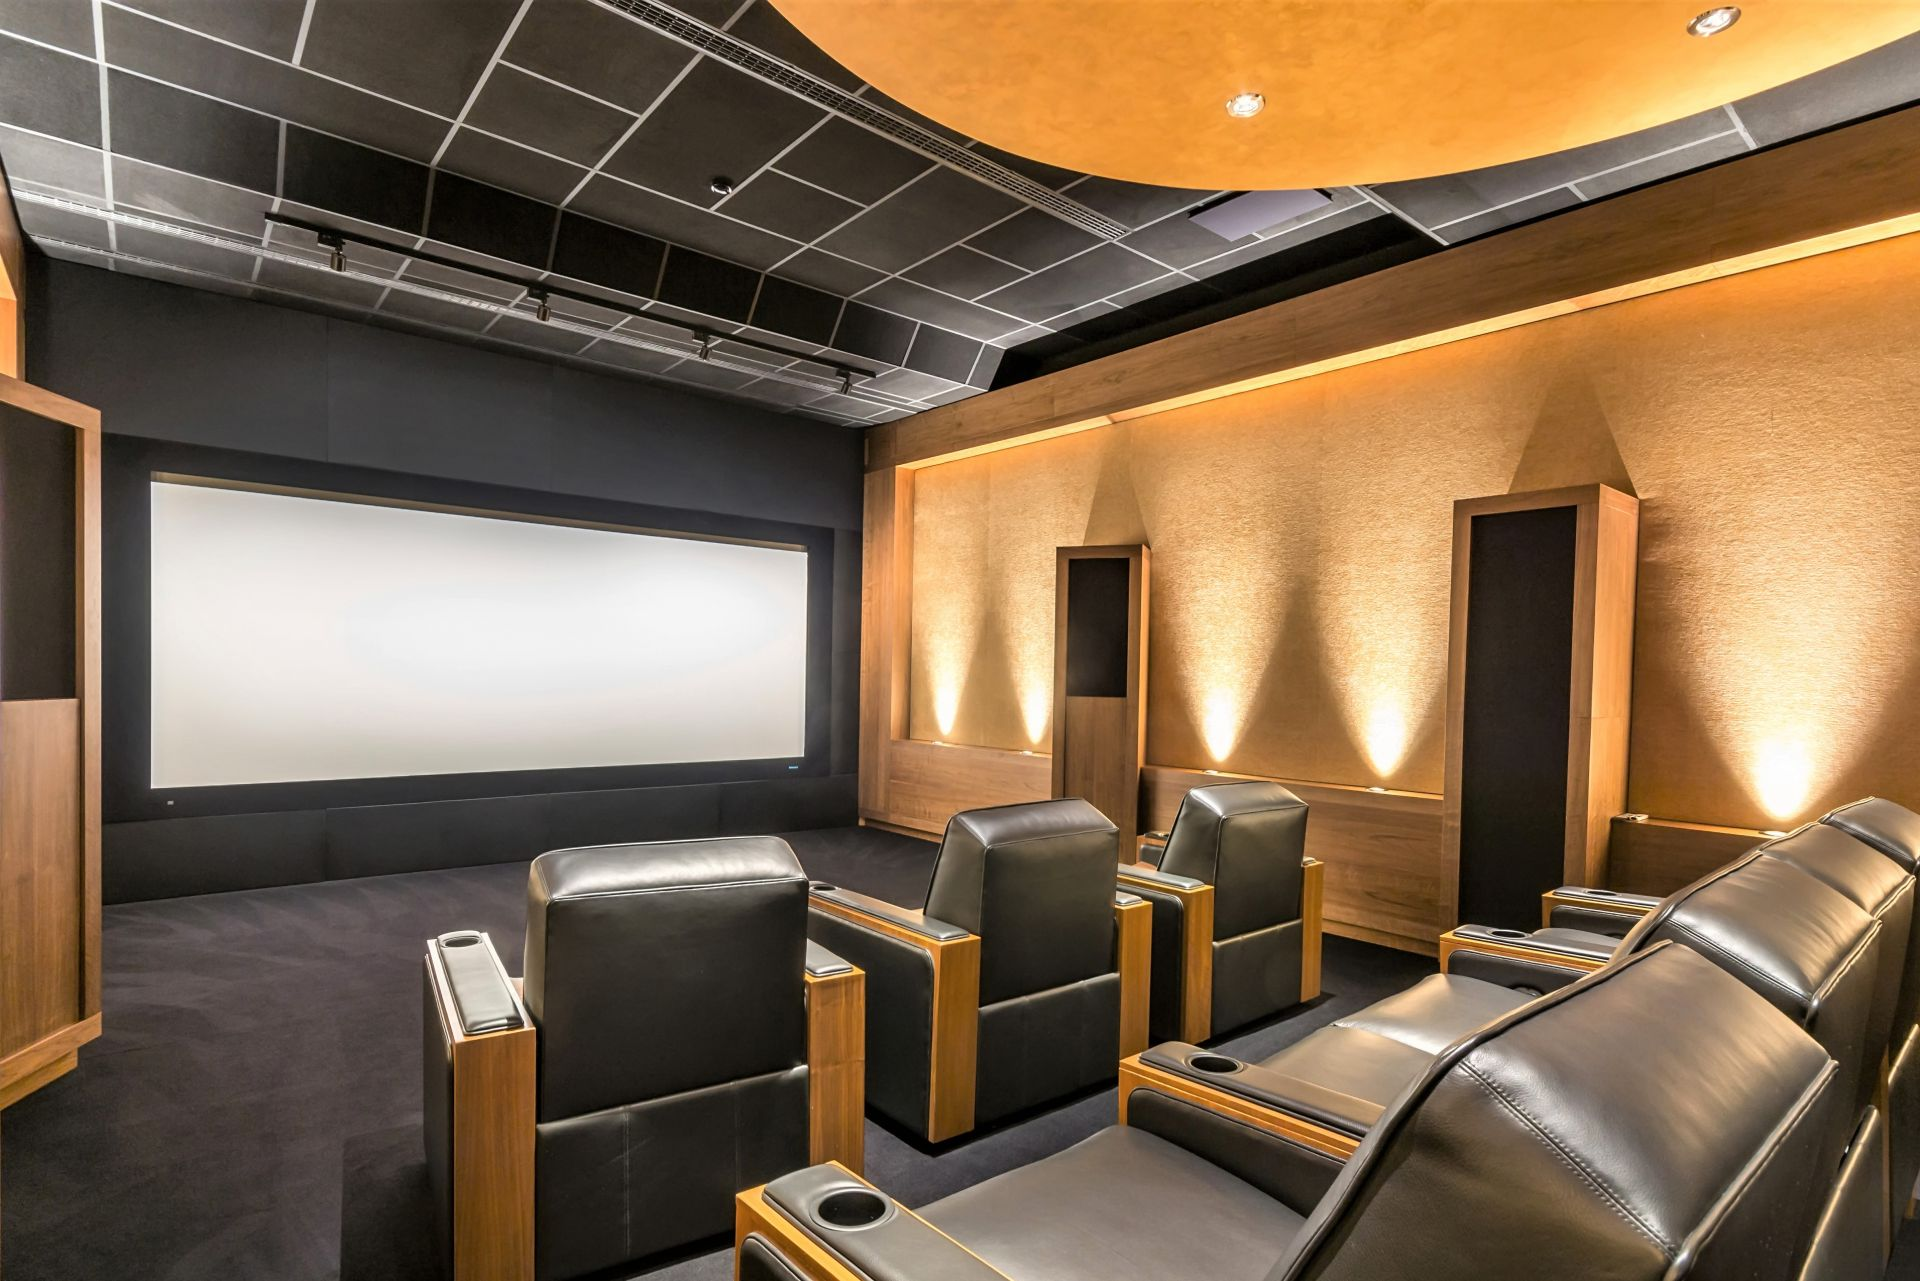 The Pros and Cons of a Home Theater